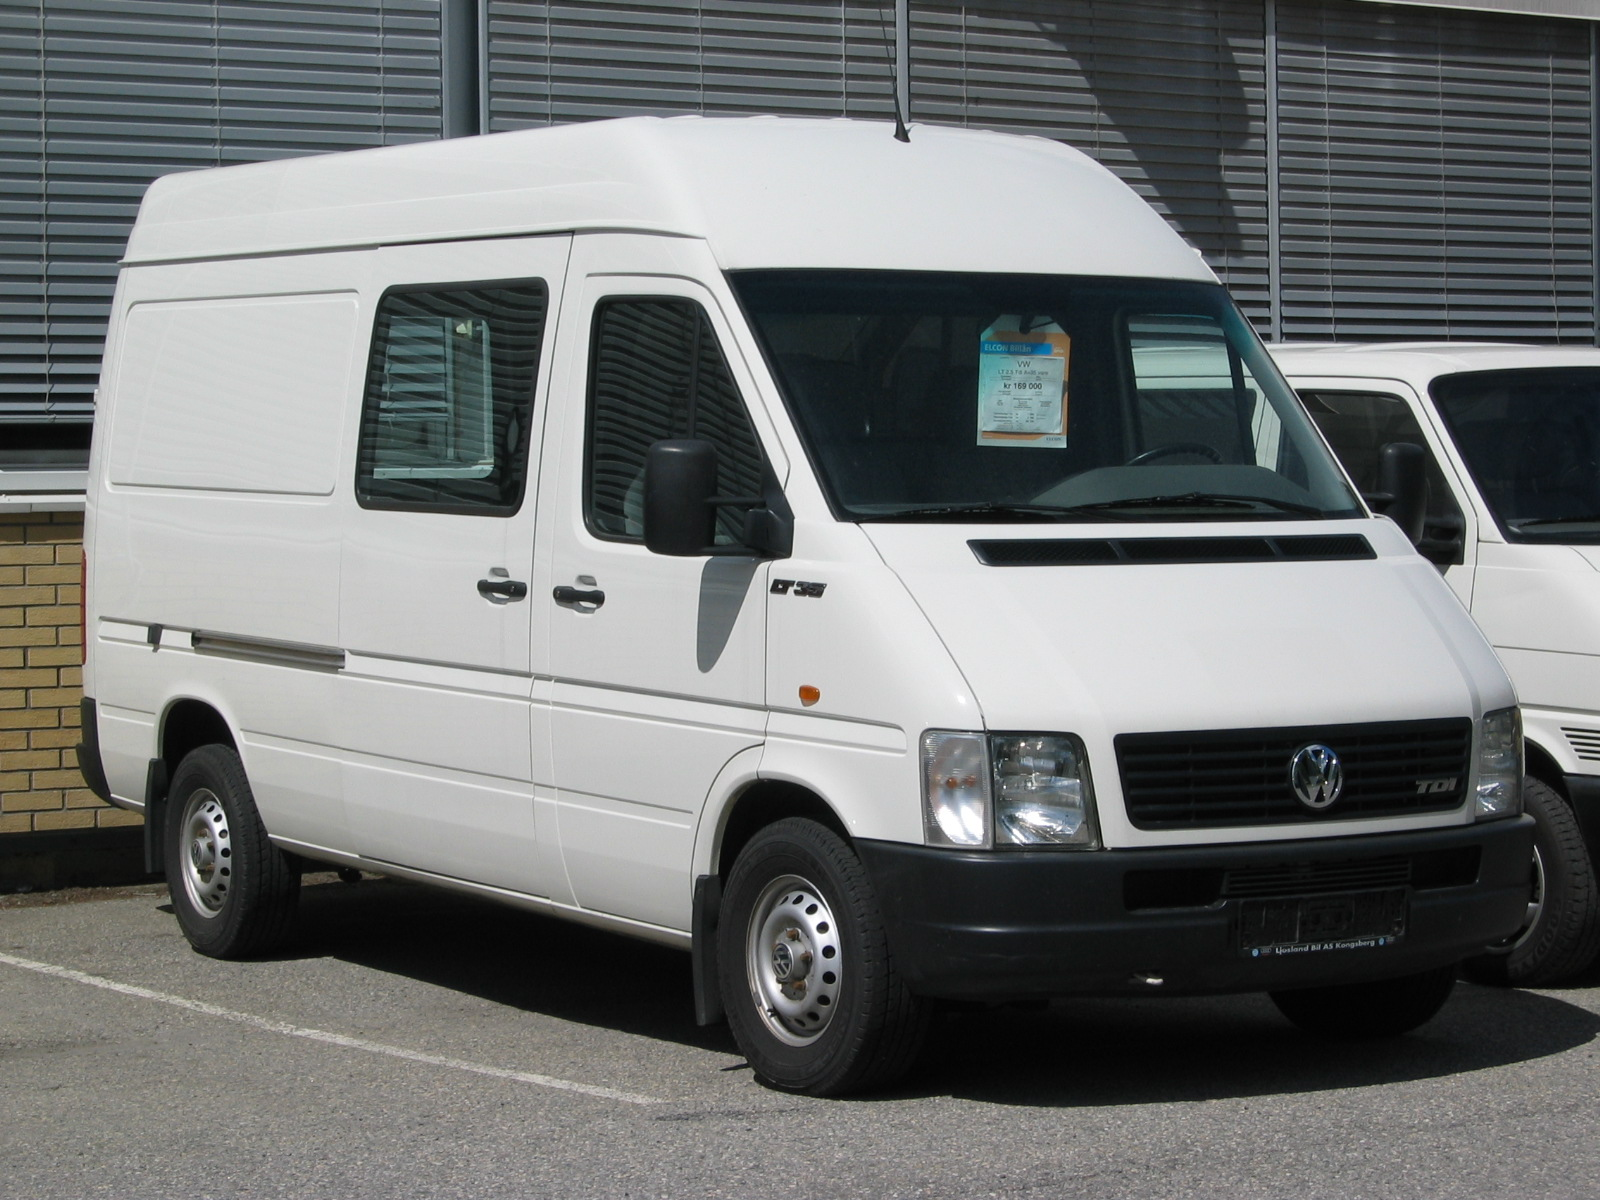 Volkswagen lieferwagen photo - 1